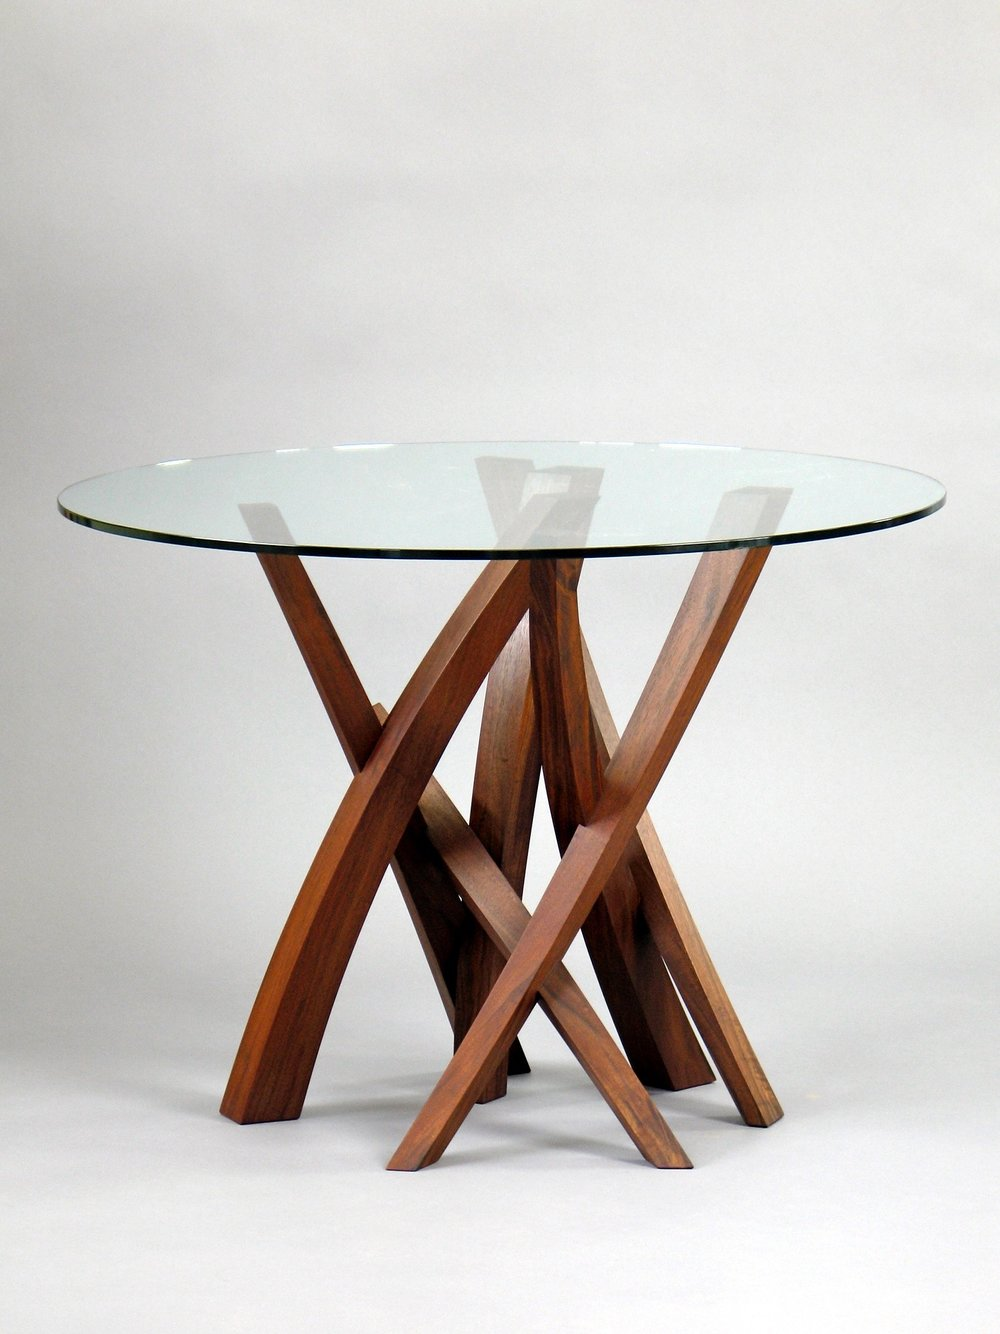 Laguna 1 - walnut, glass